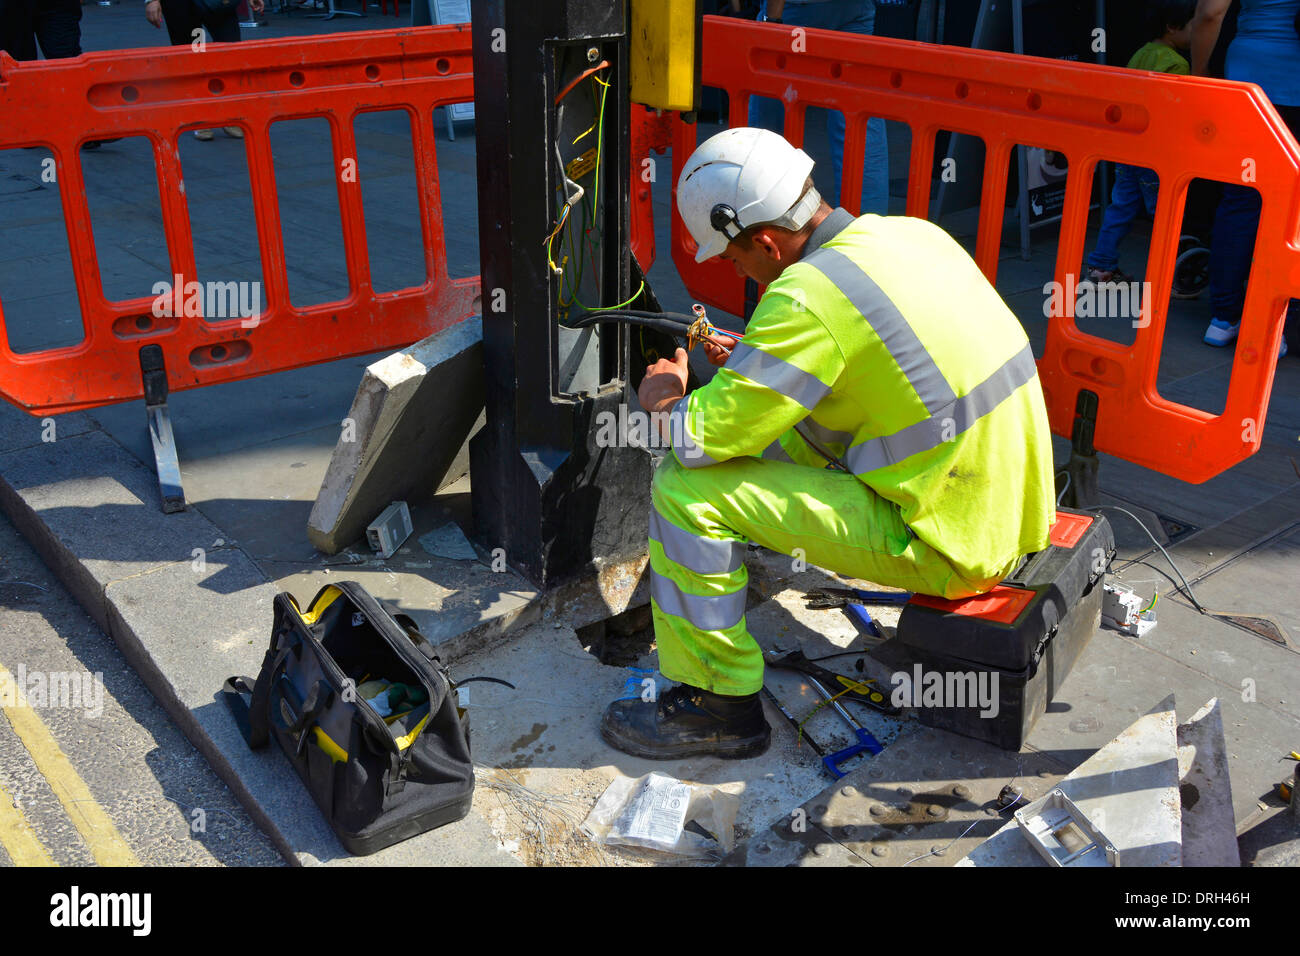 Electrician working on cables at base of street lighting column - Stock Image